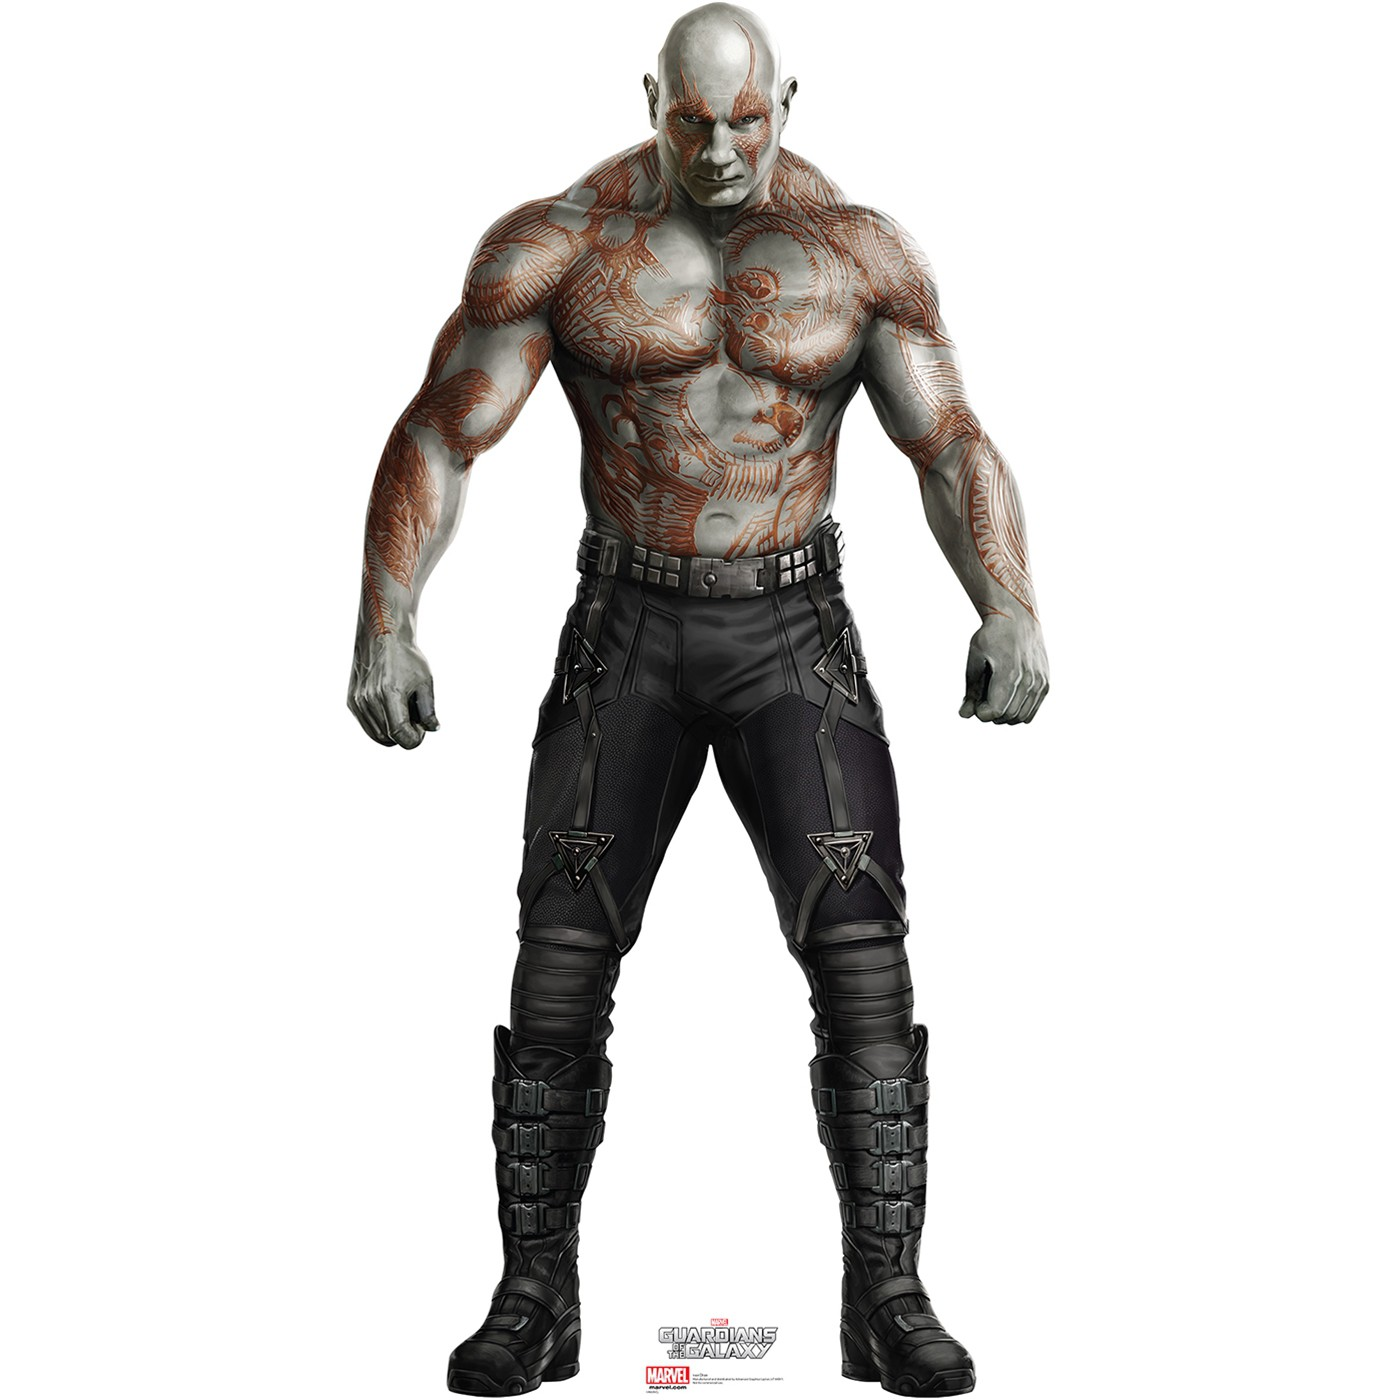 GOTG Drax The Destroyer Cardboard Cutout